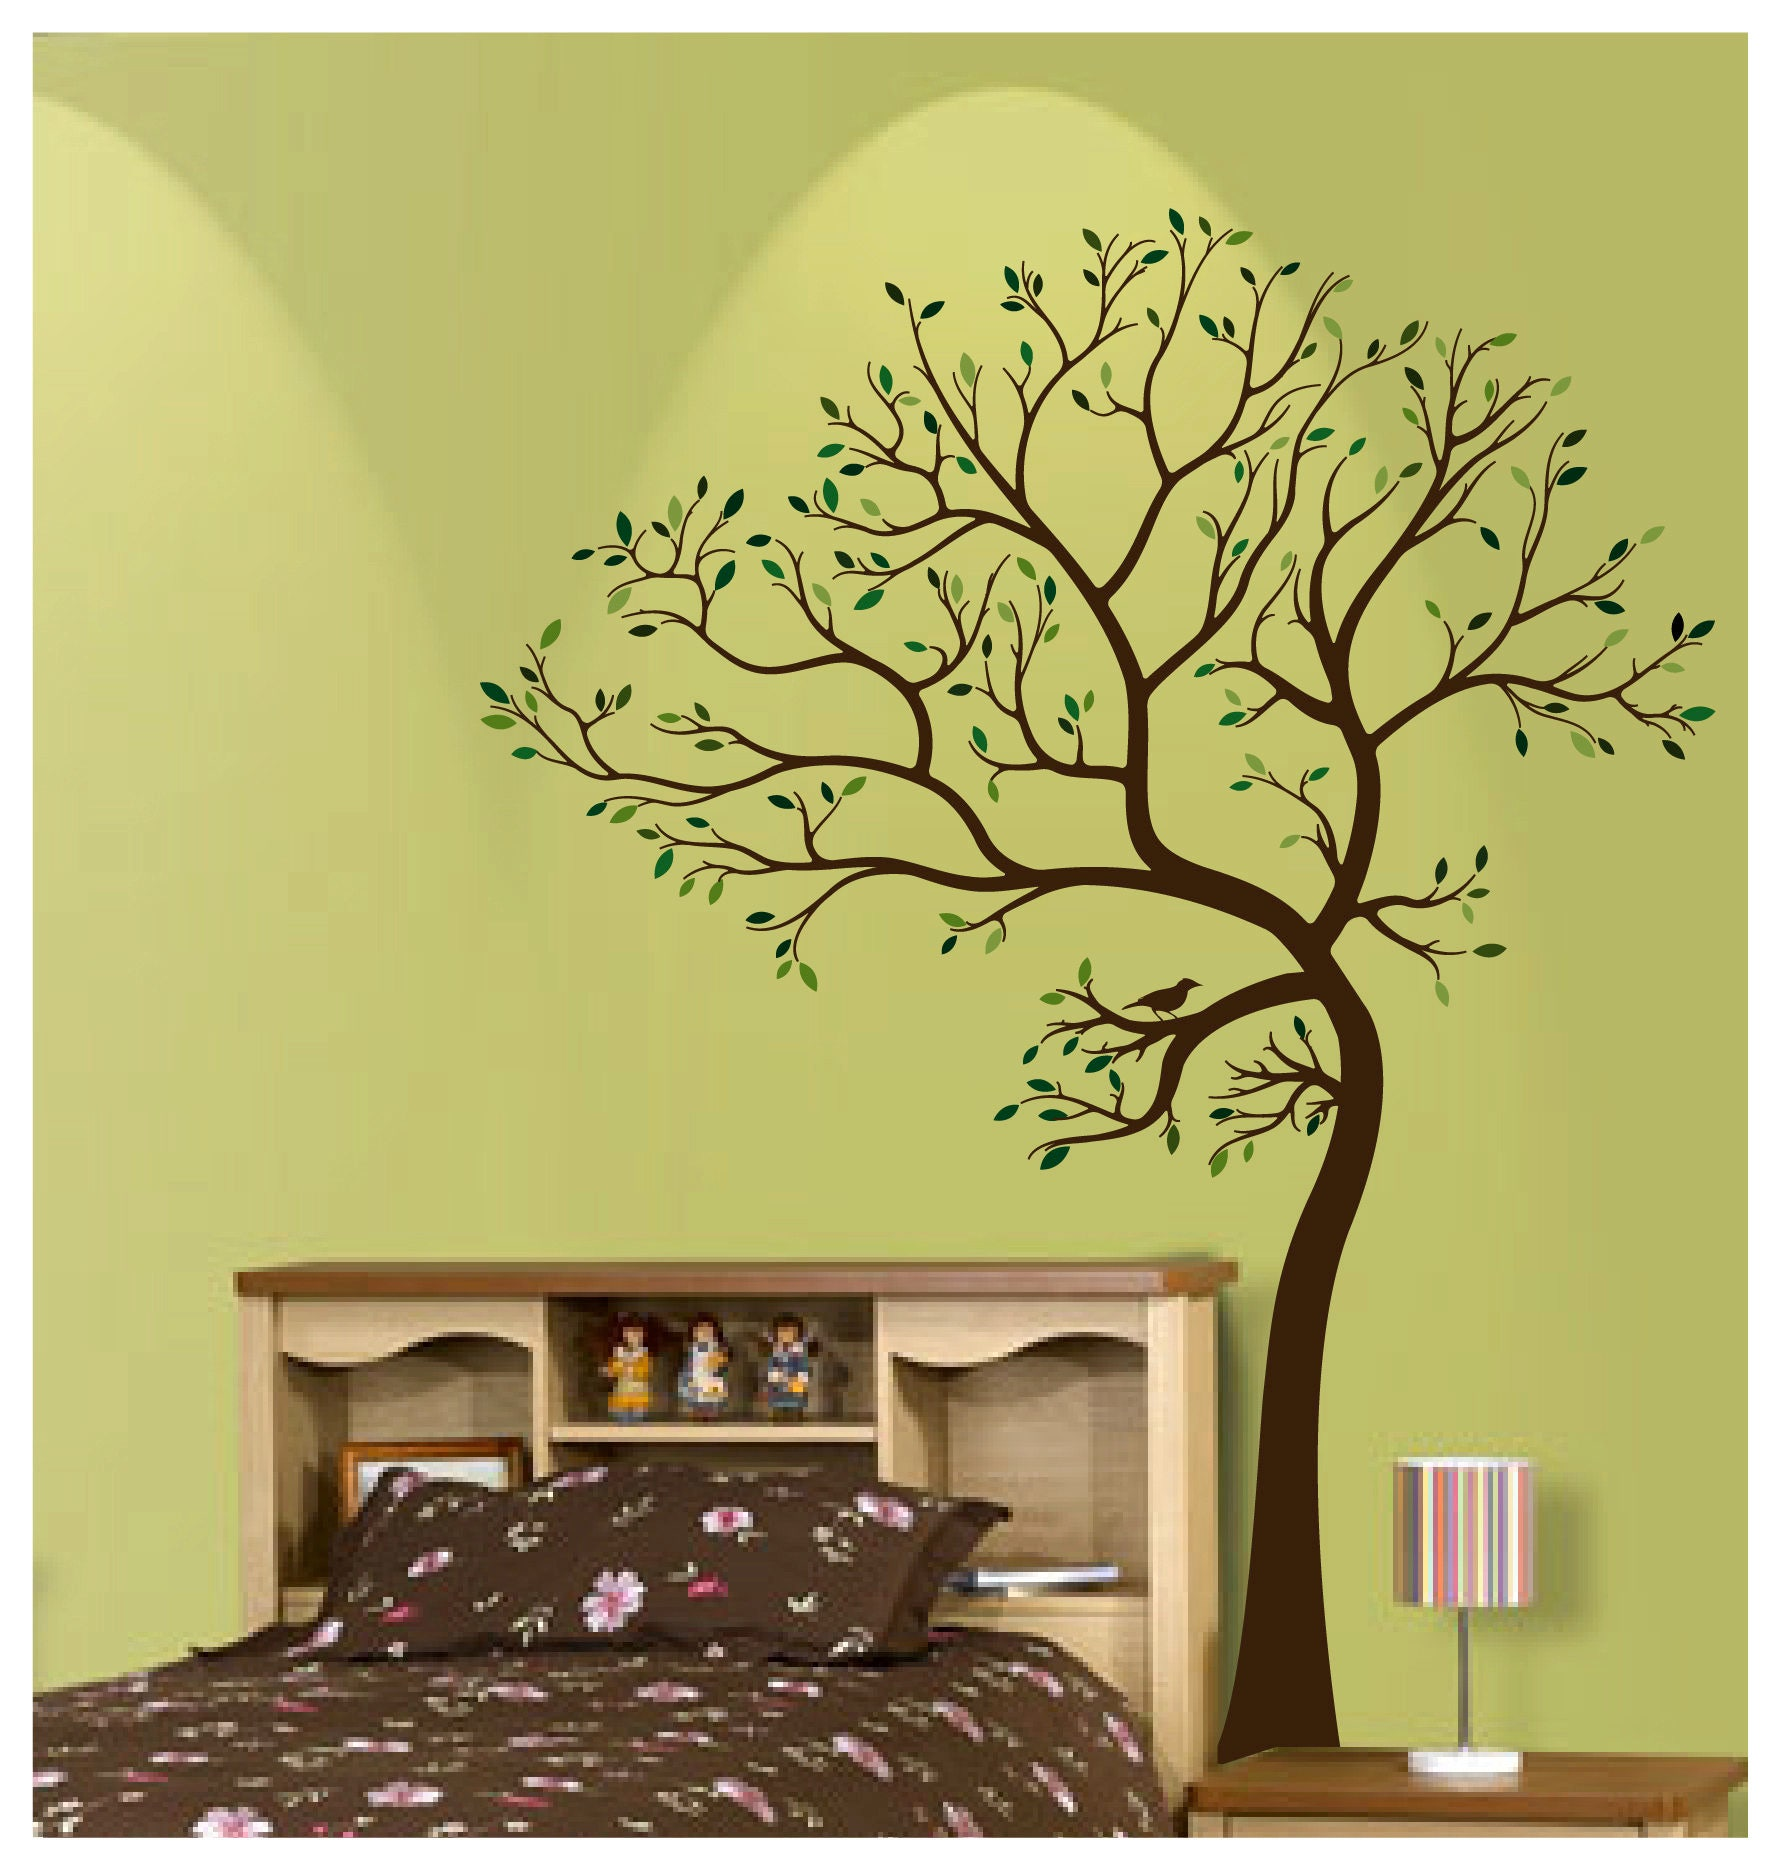 7 Ft. BIG Tree with Bird Wall Decal Deco Art Sticker Mural | Etsy